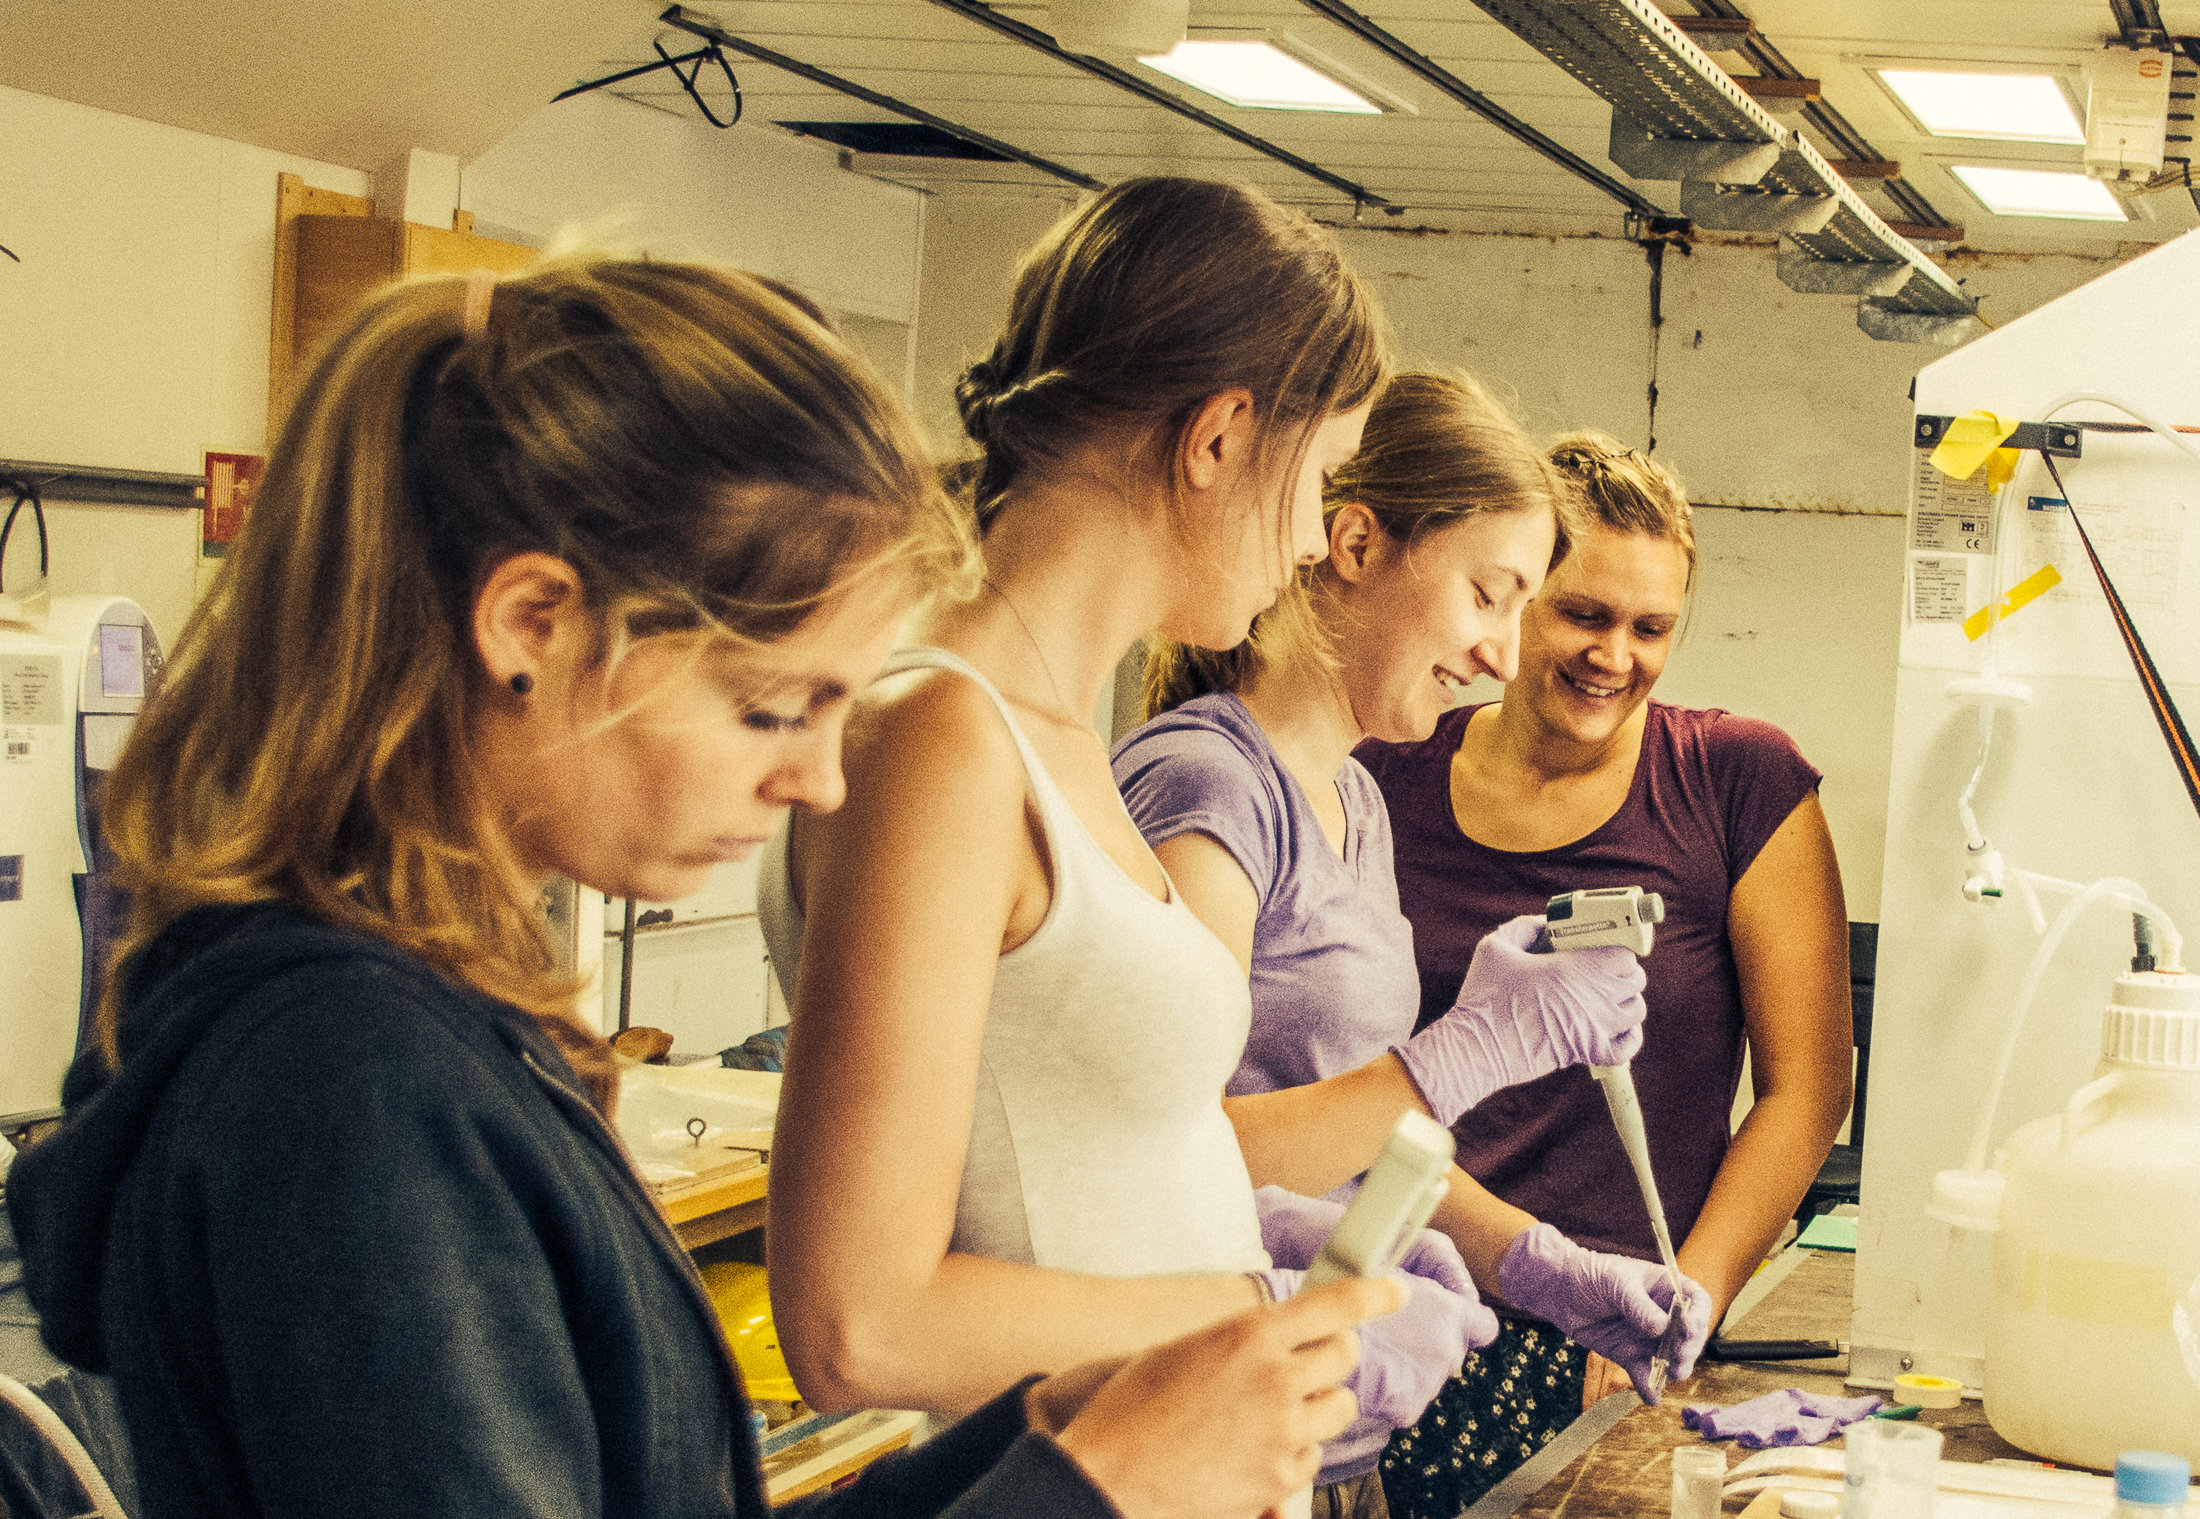 Monica Martens, Laura Schreuder, Franziska Pausch and Laura Korte working on Laura's incubation experiment at the lab.